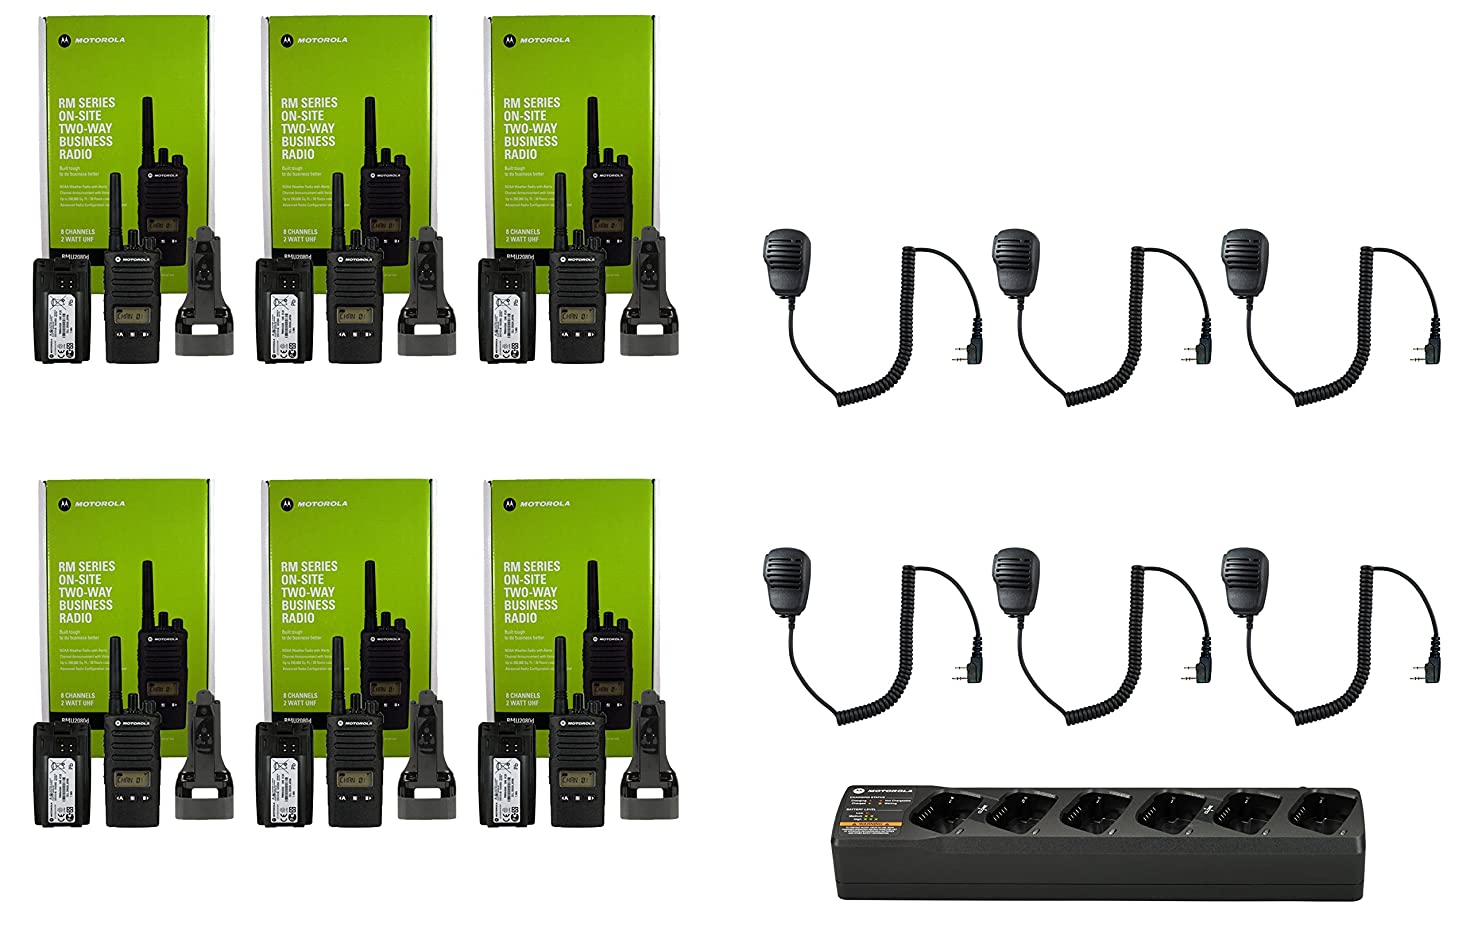 QTY 6 Motorola RMU2080D UHF 2 watt 8 channel radio with display and Speaker Microphone and 1 Multi-Unit Gang Charger PMLN6384 (NO SINGLE CHARGER INCLUDED)